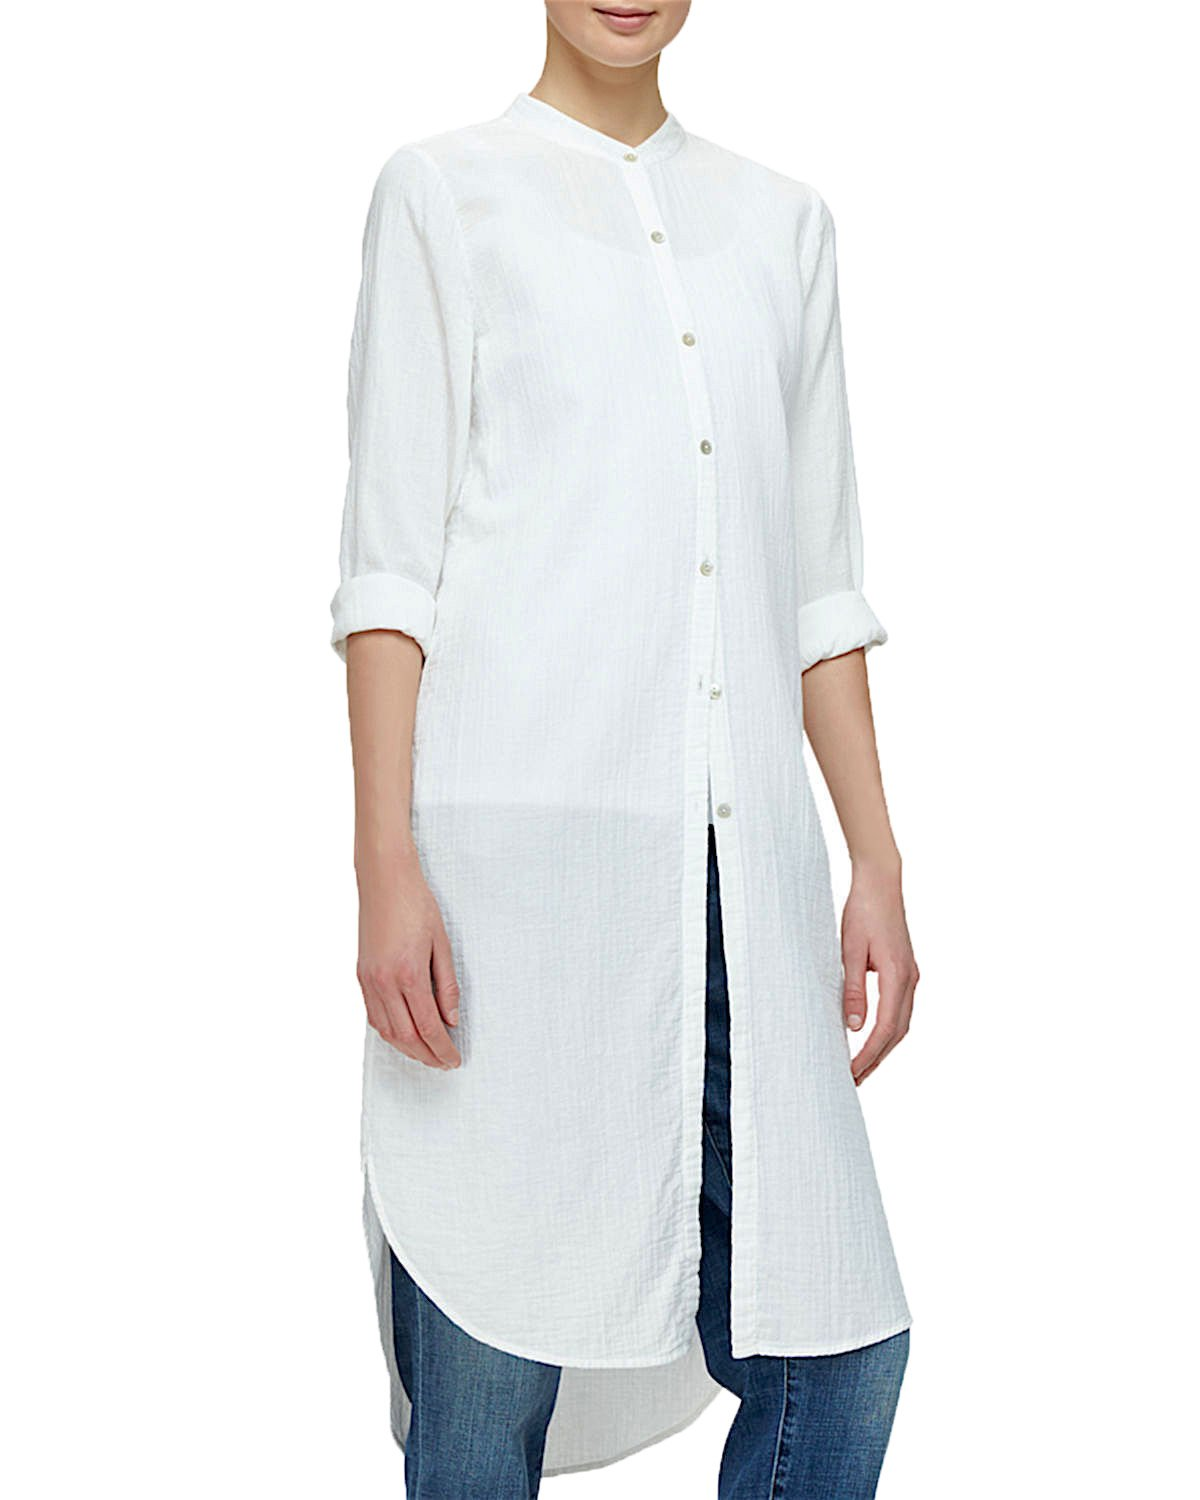 Eileen Fisher Women's Mandarin Collar Layering Shirtdress (Medium, White)